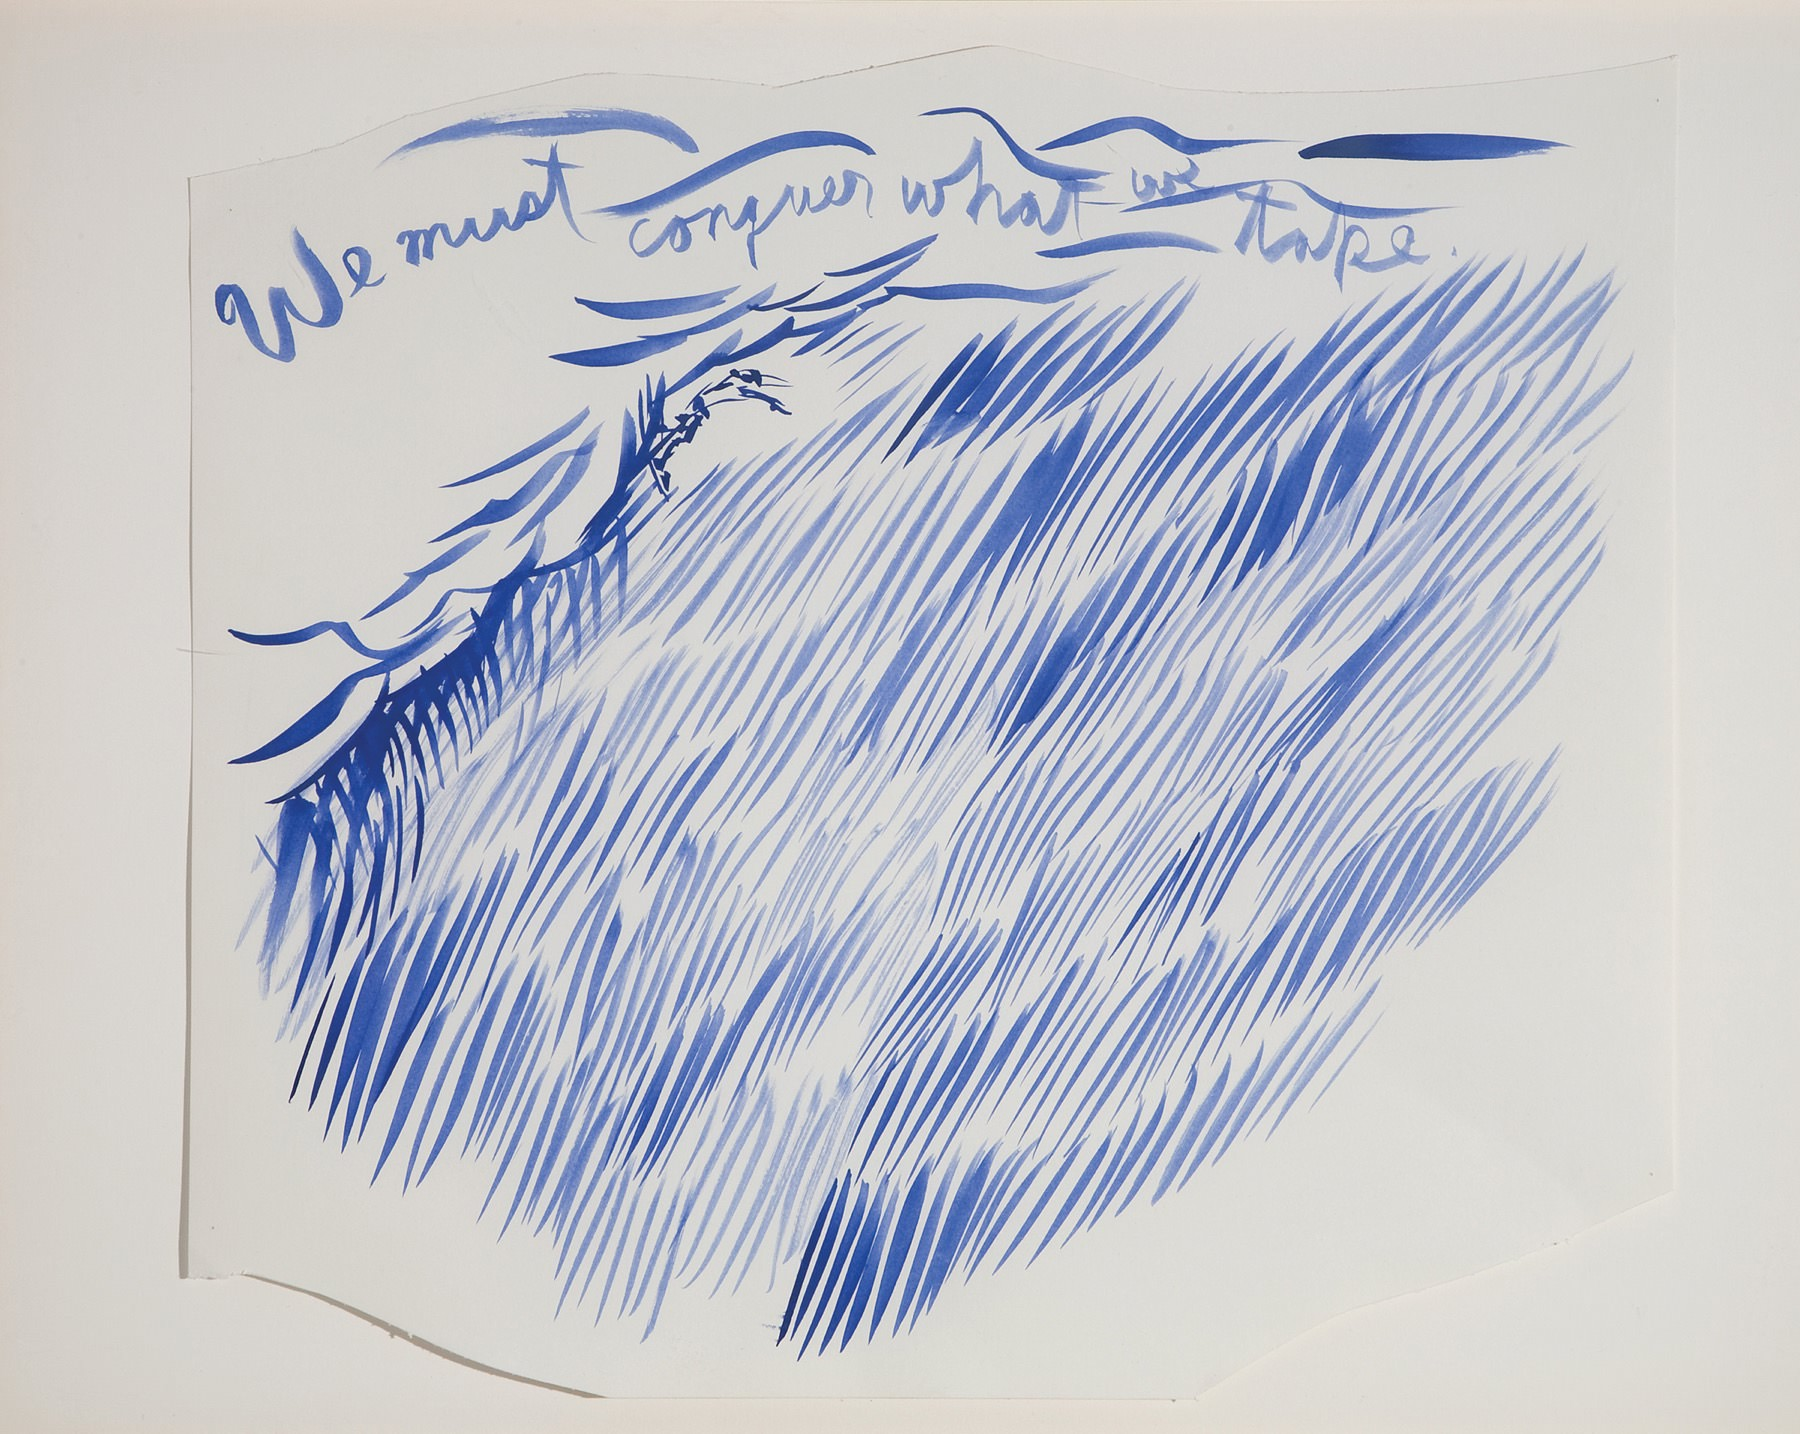 Image of Raymond Pettibon, Untitled (We must conquer), 2003